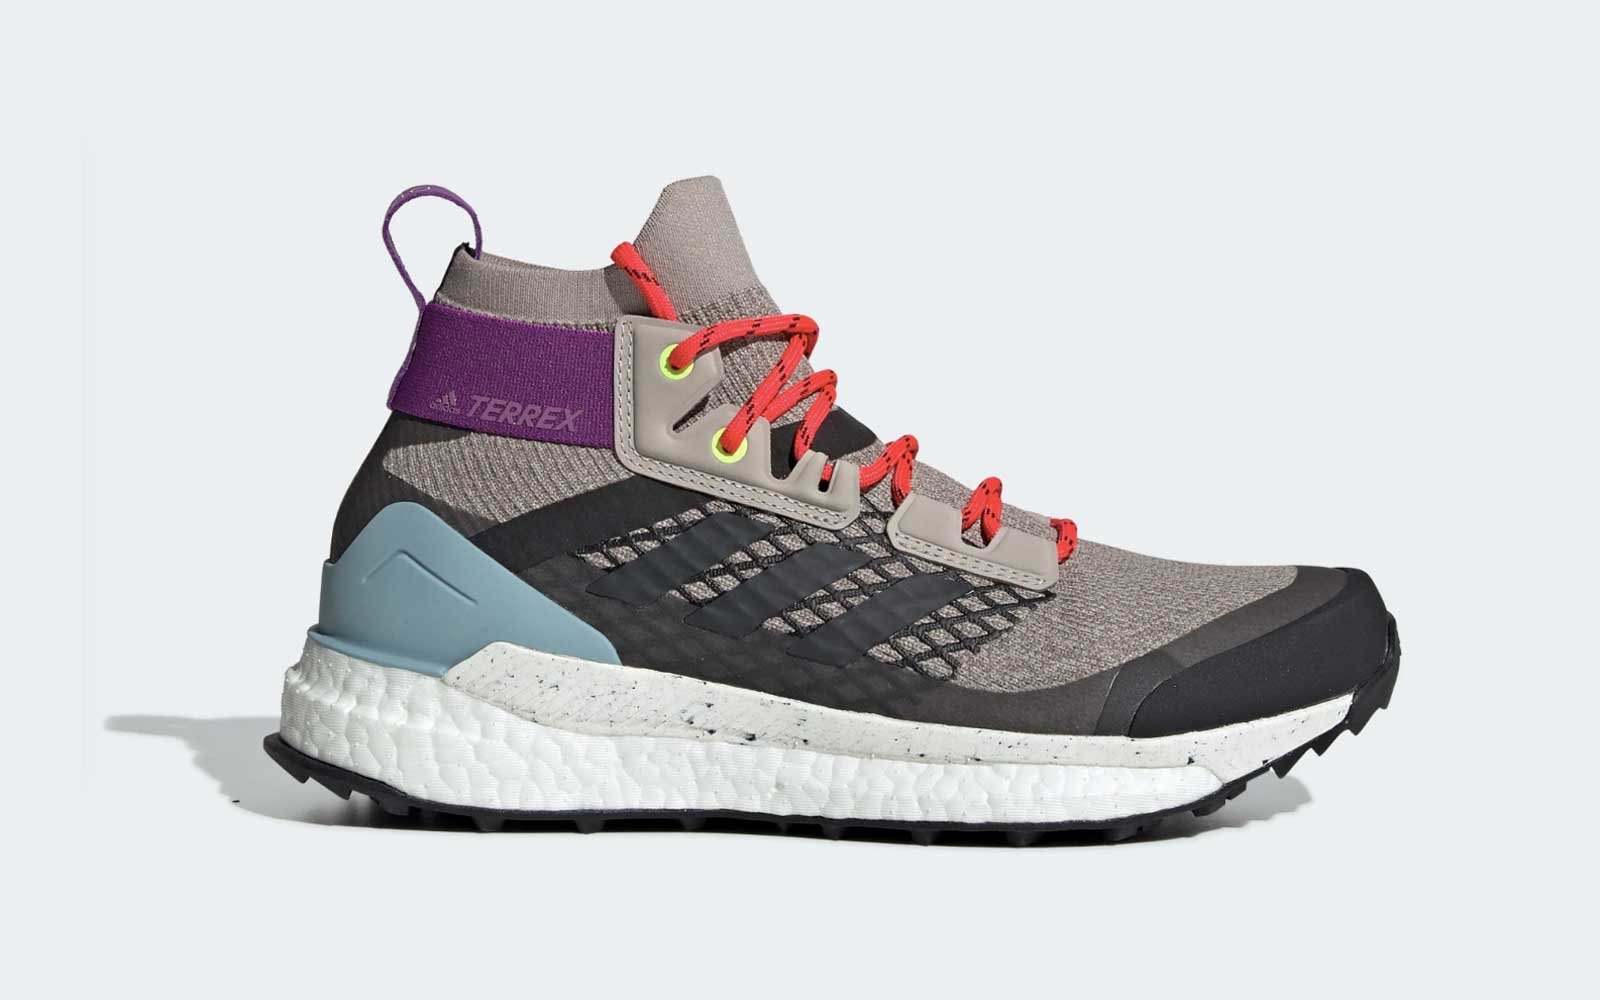 cute hiking shoes and boots for women adidas